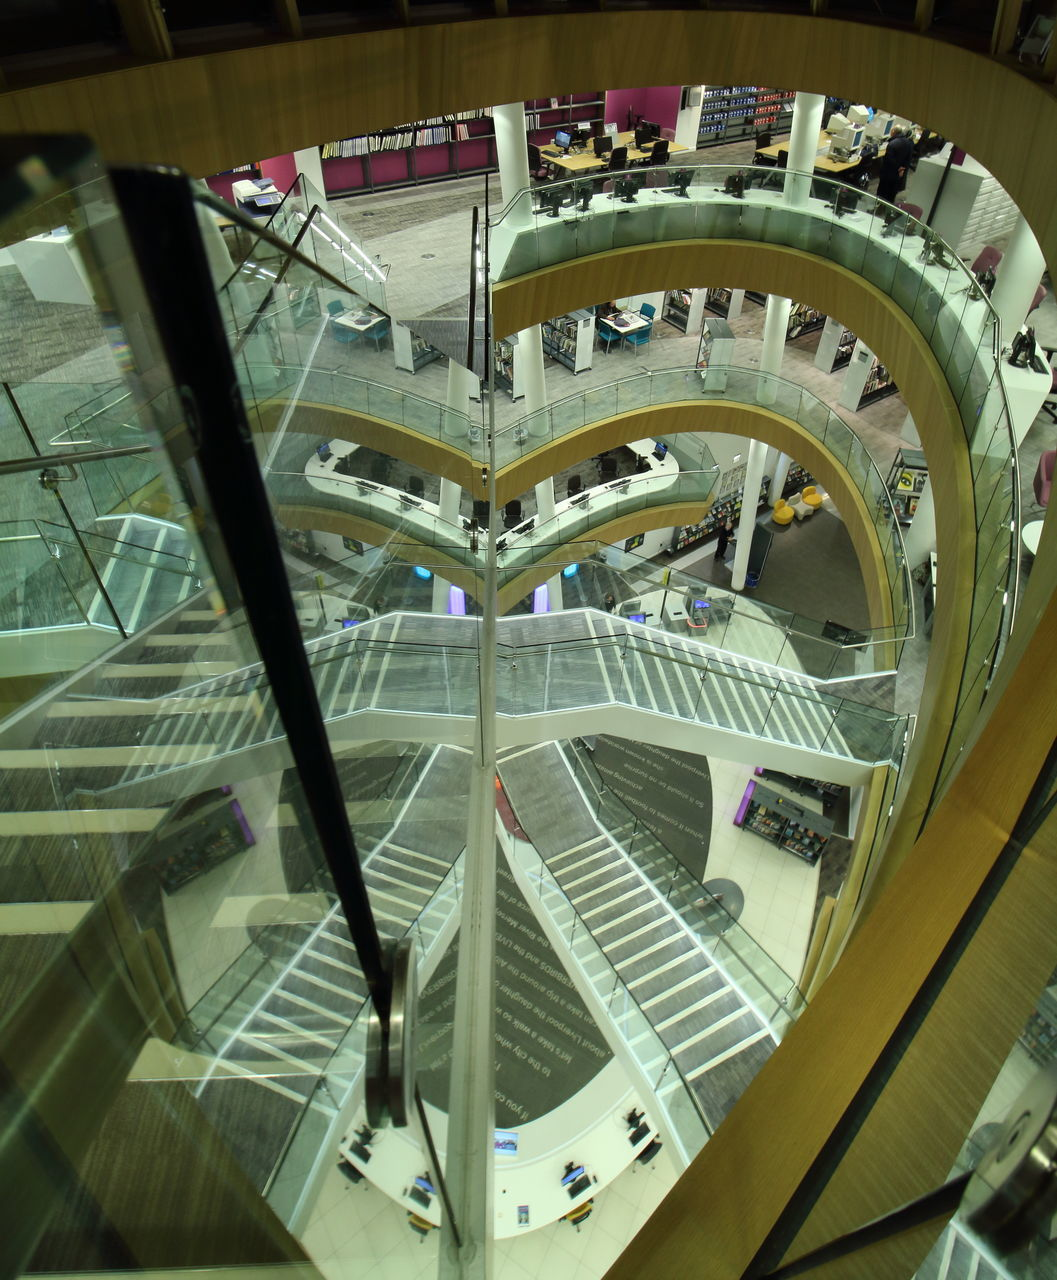 architecture, staircase, indoors, steps and staircases, steps, built structure, modern, futuristic, no people, technology, day